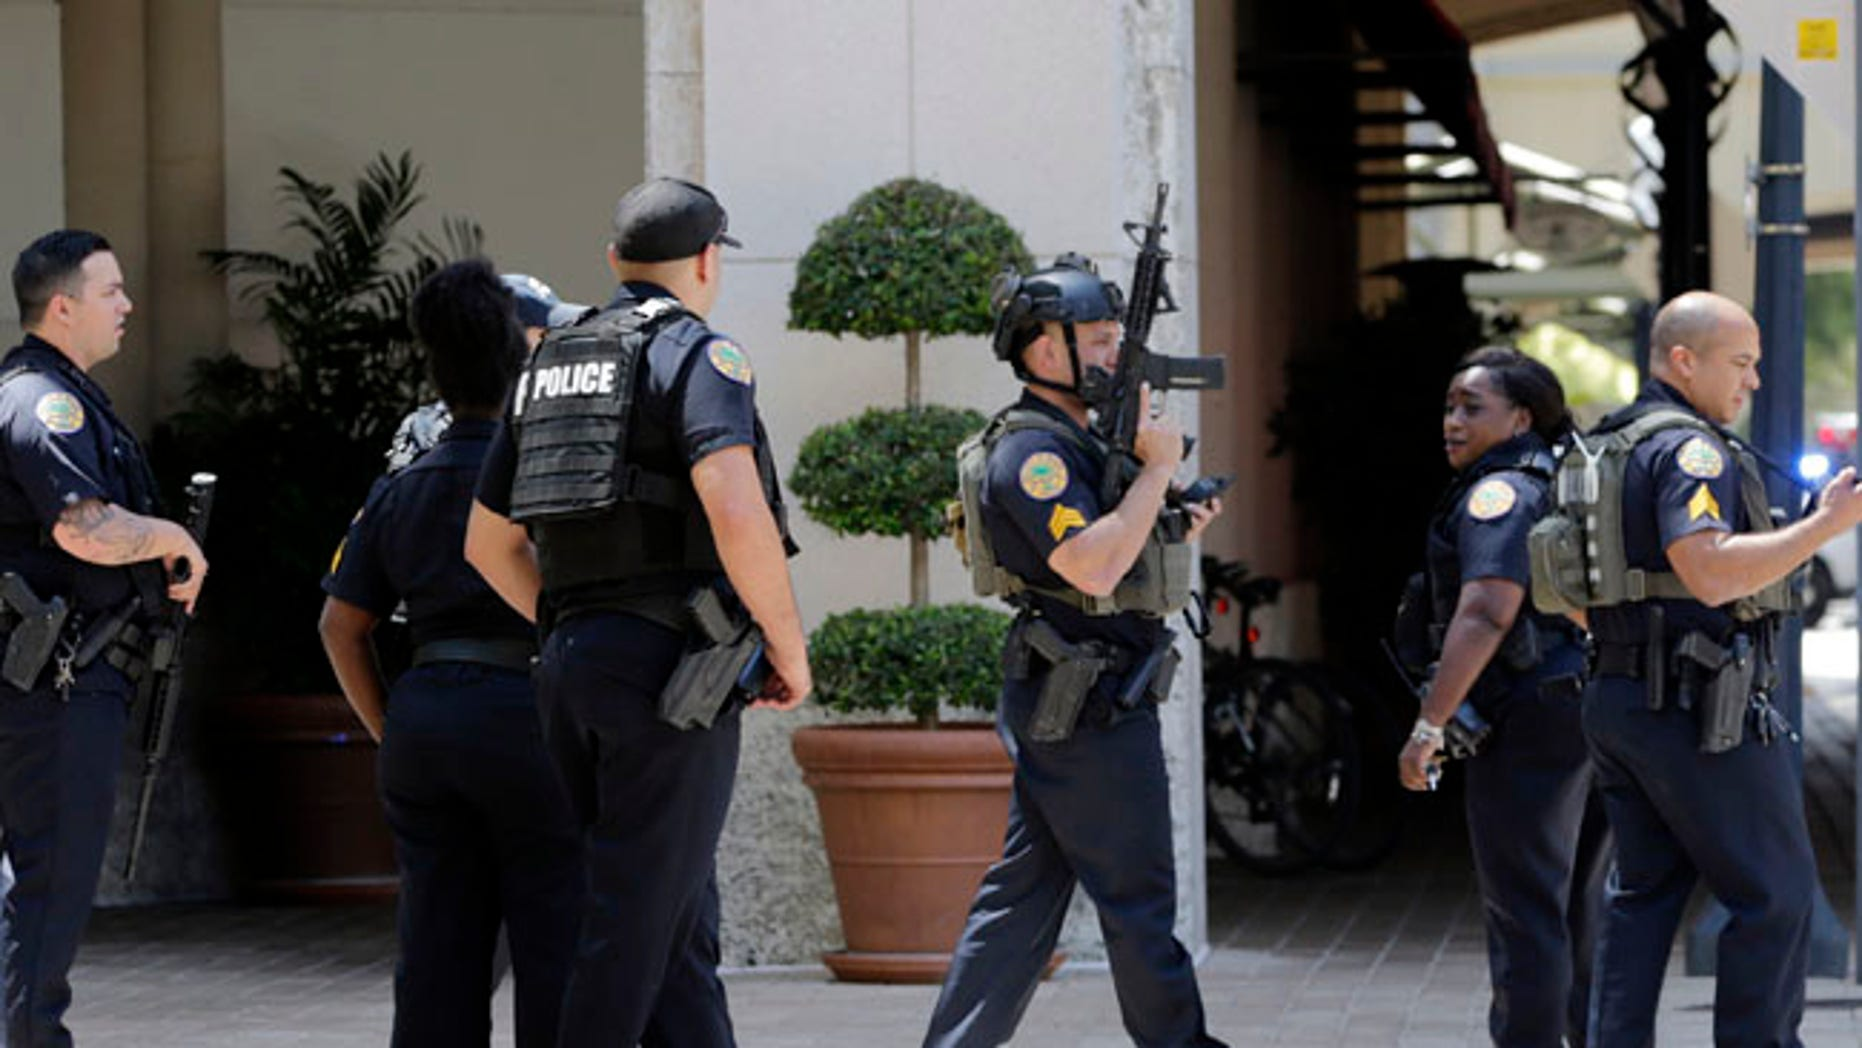 Police patrol outside of the Shops at Merrick Park after a shooting Saturday in Coral Gables, Florida.